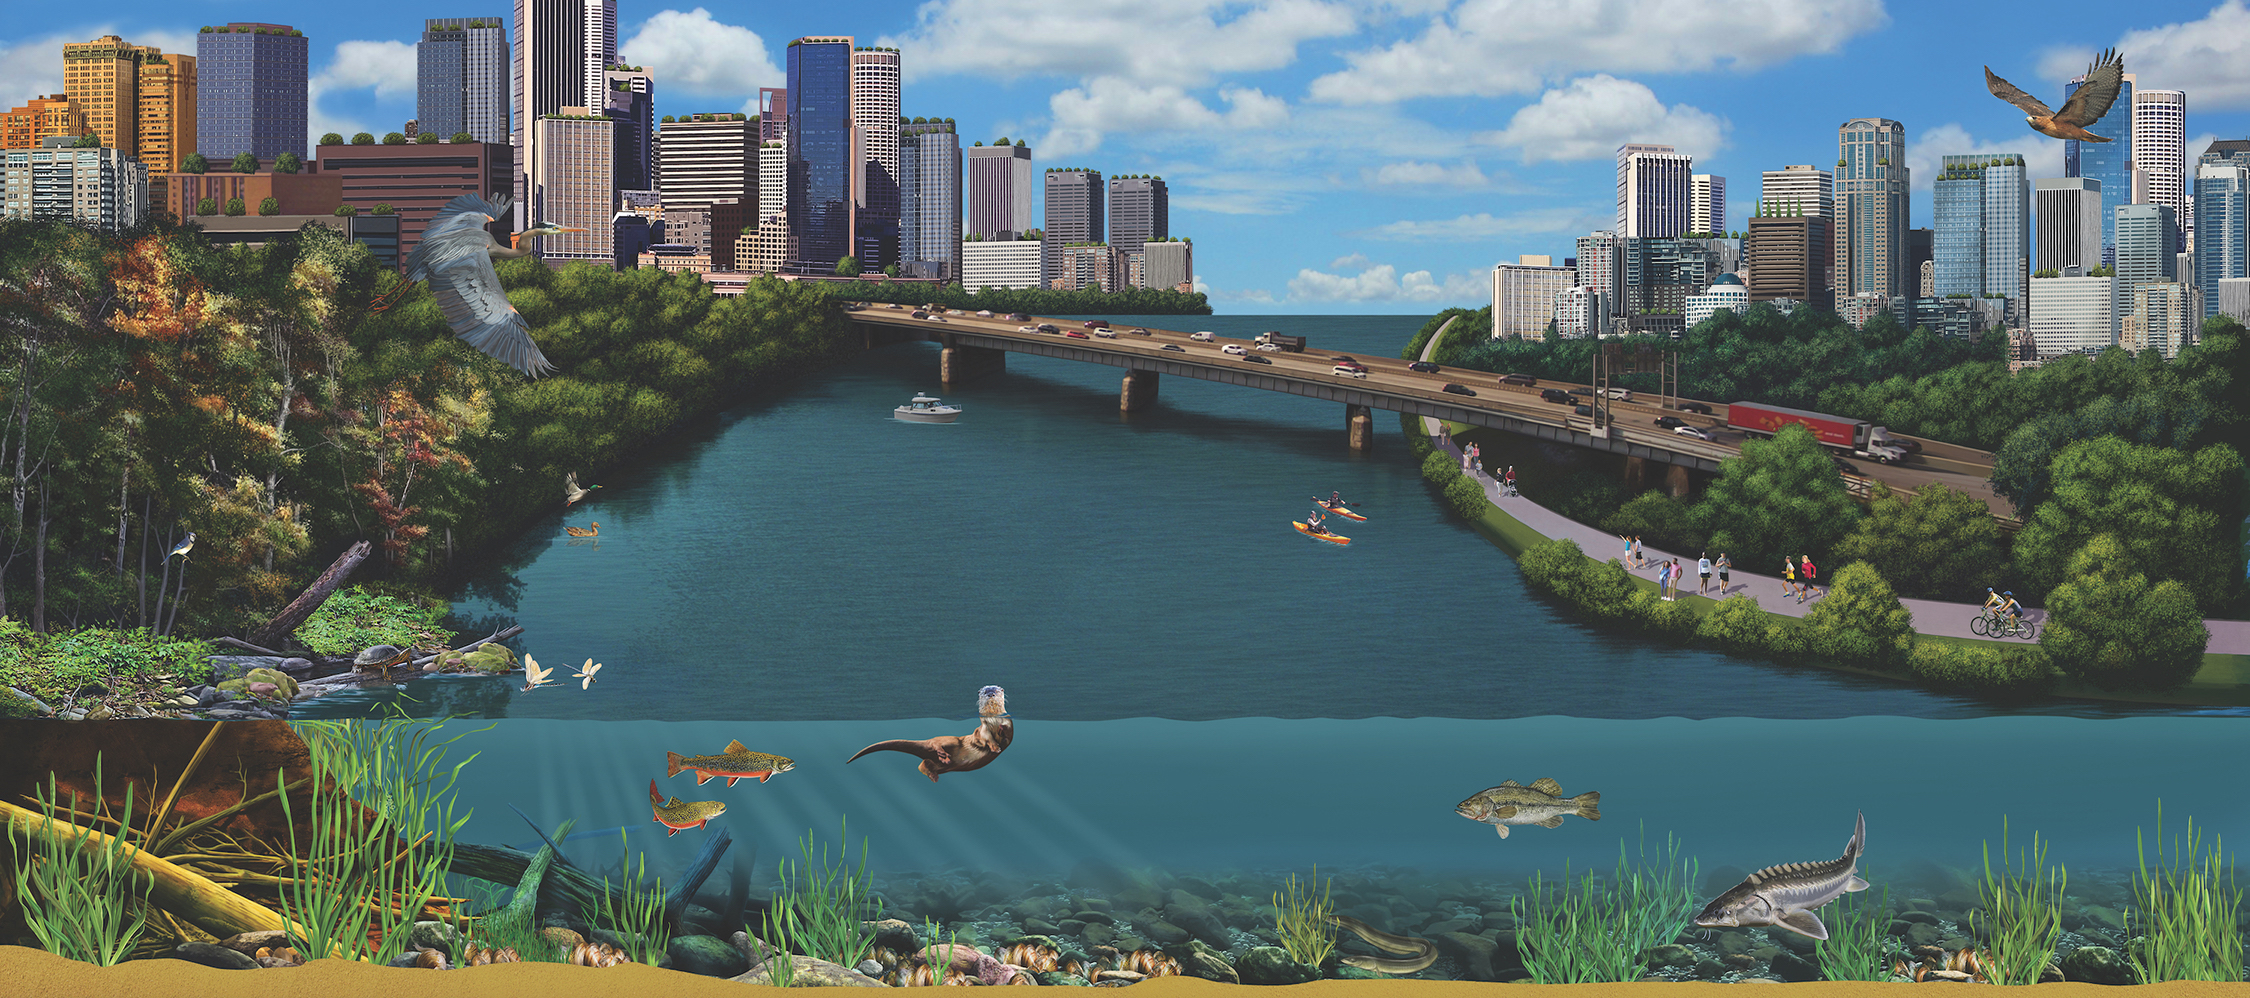 Murals at the Mussel Hatchery illustrate healthy urban watersheds, full of creatures and plants large and small.